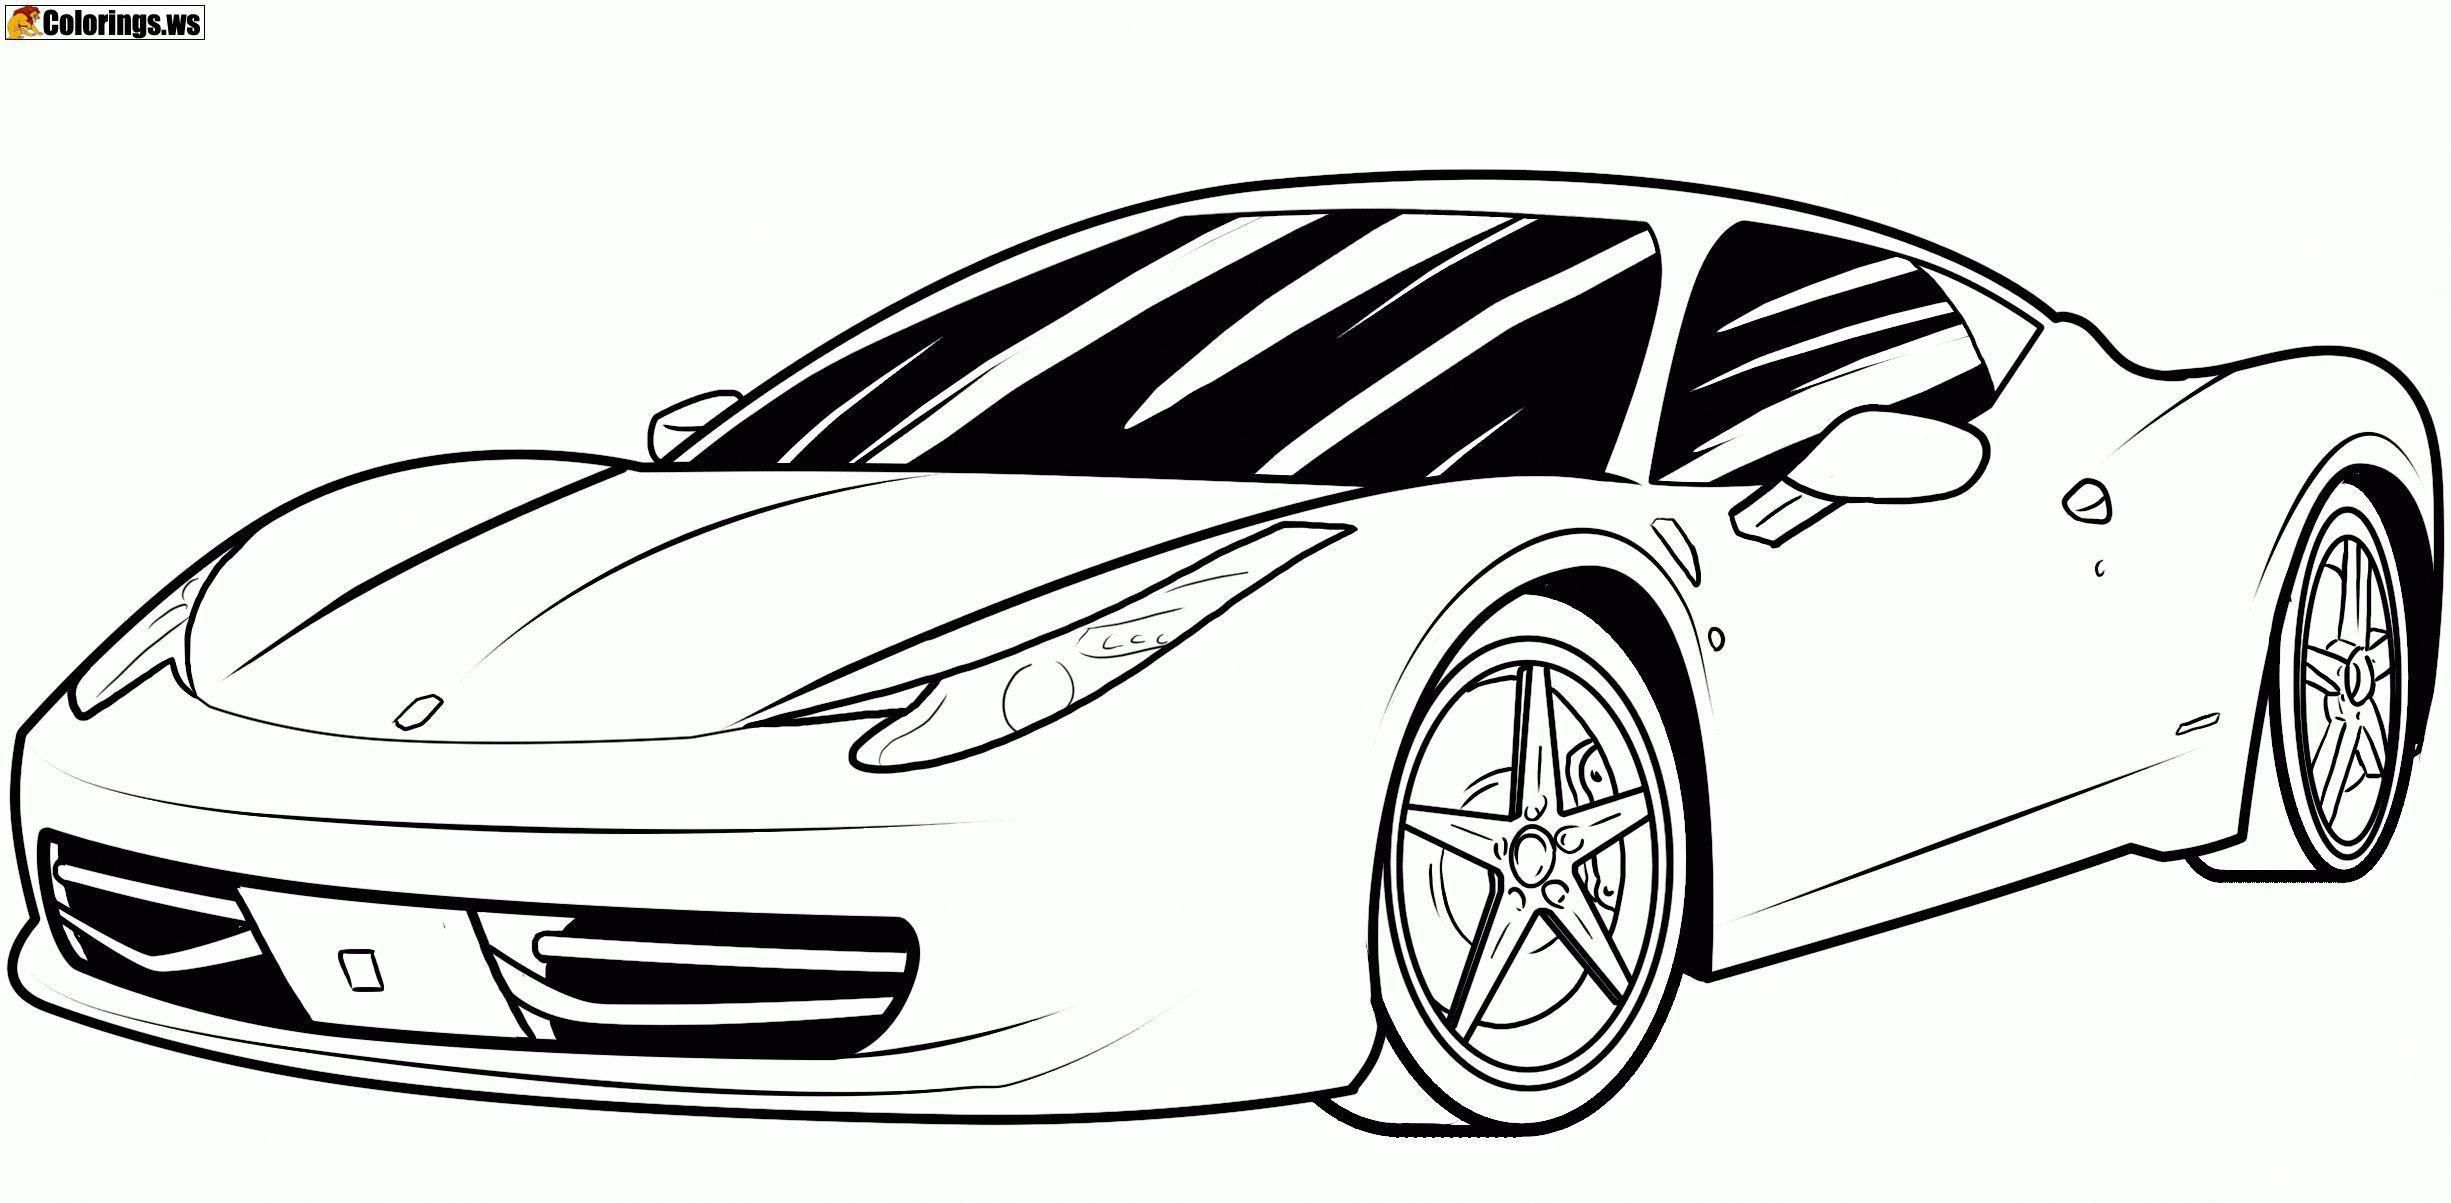 Ferrari Car Coloring Pages  Car Coloring Pages  In the past, the